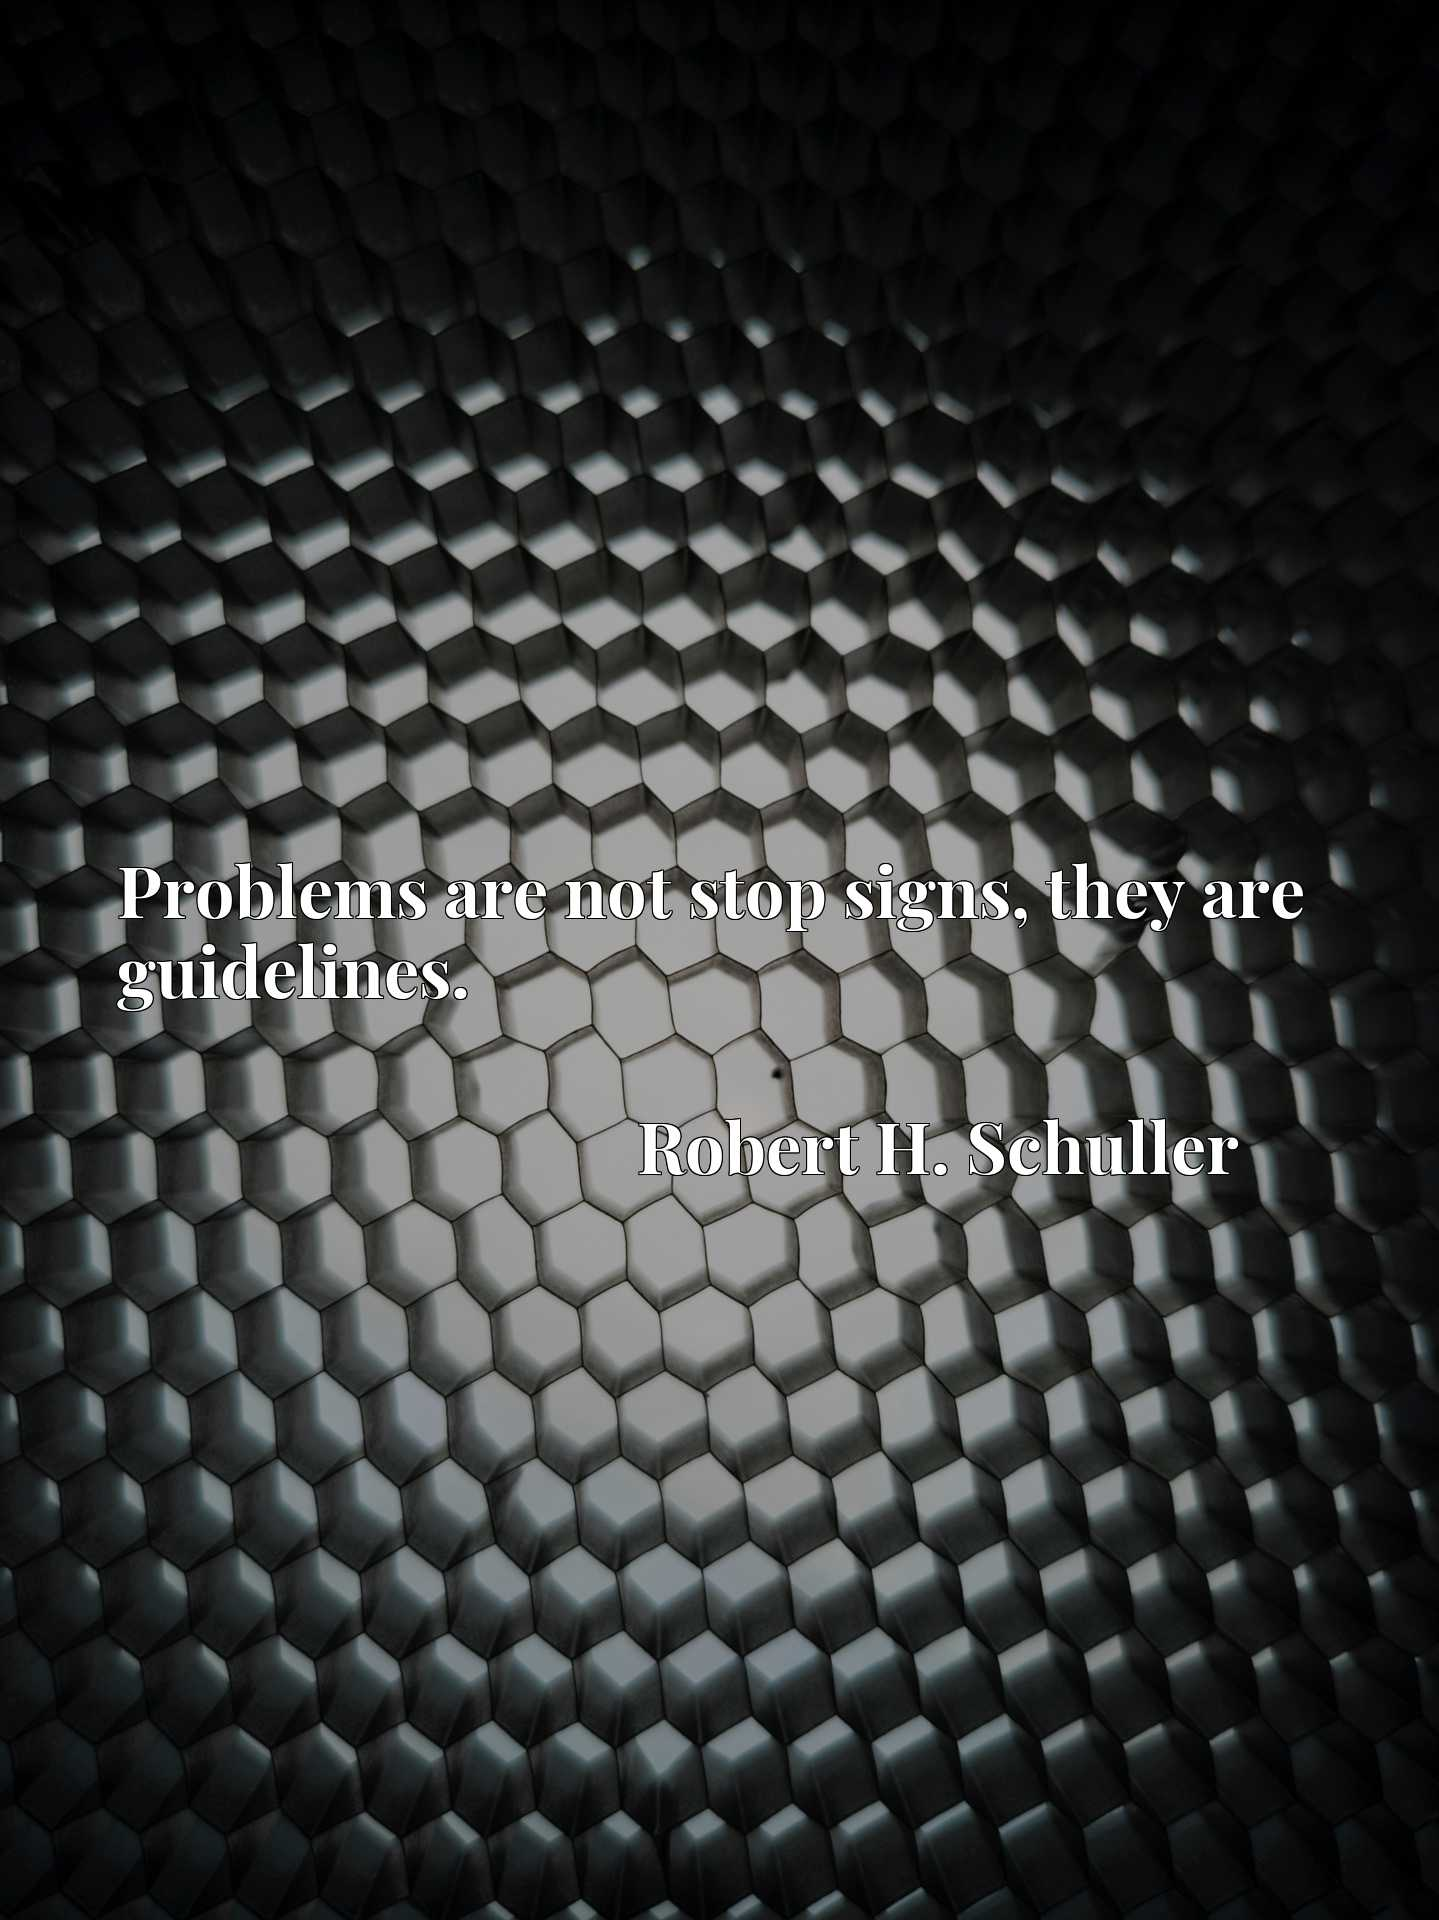 Quote Picture :Problems are not stop signs, they are guidelines.